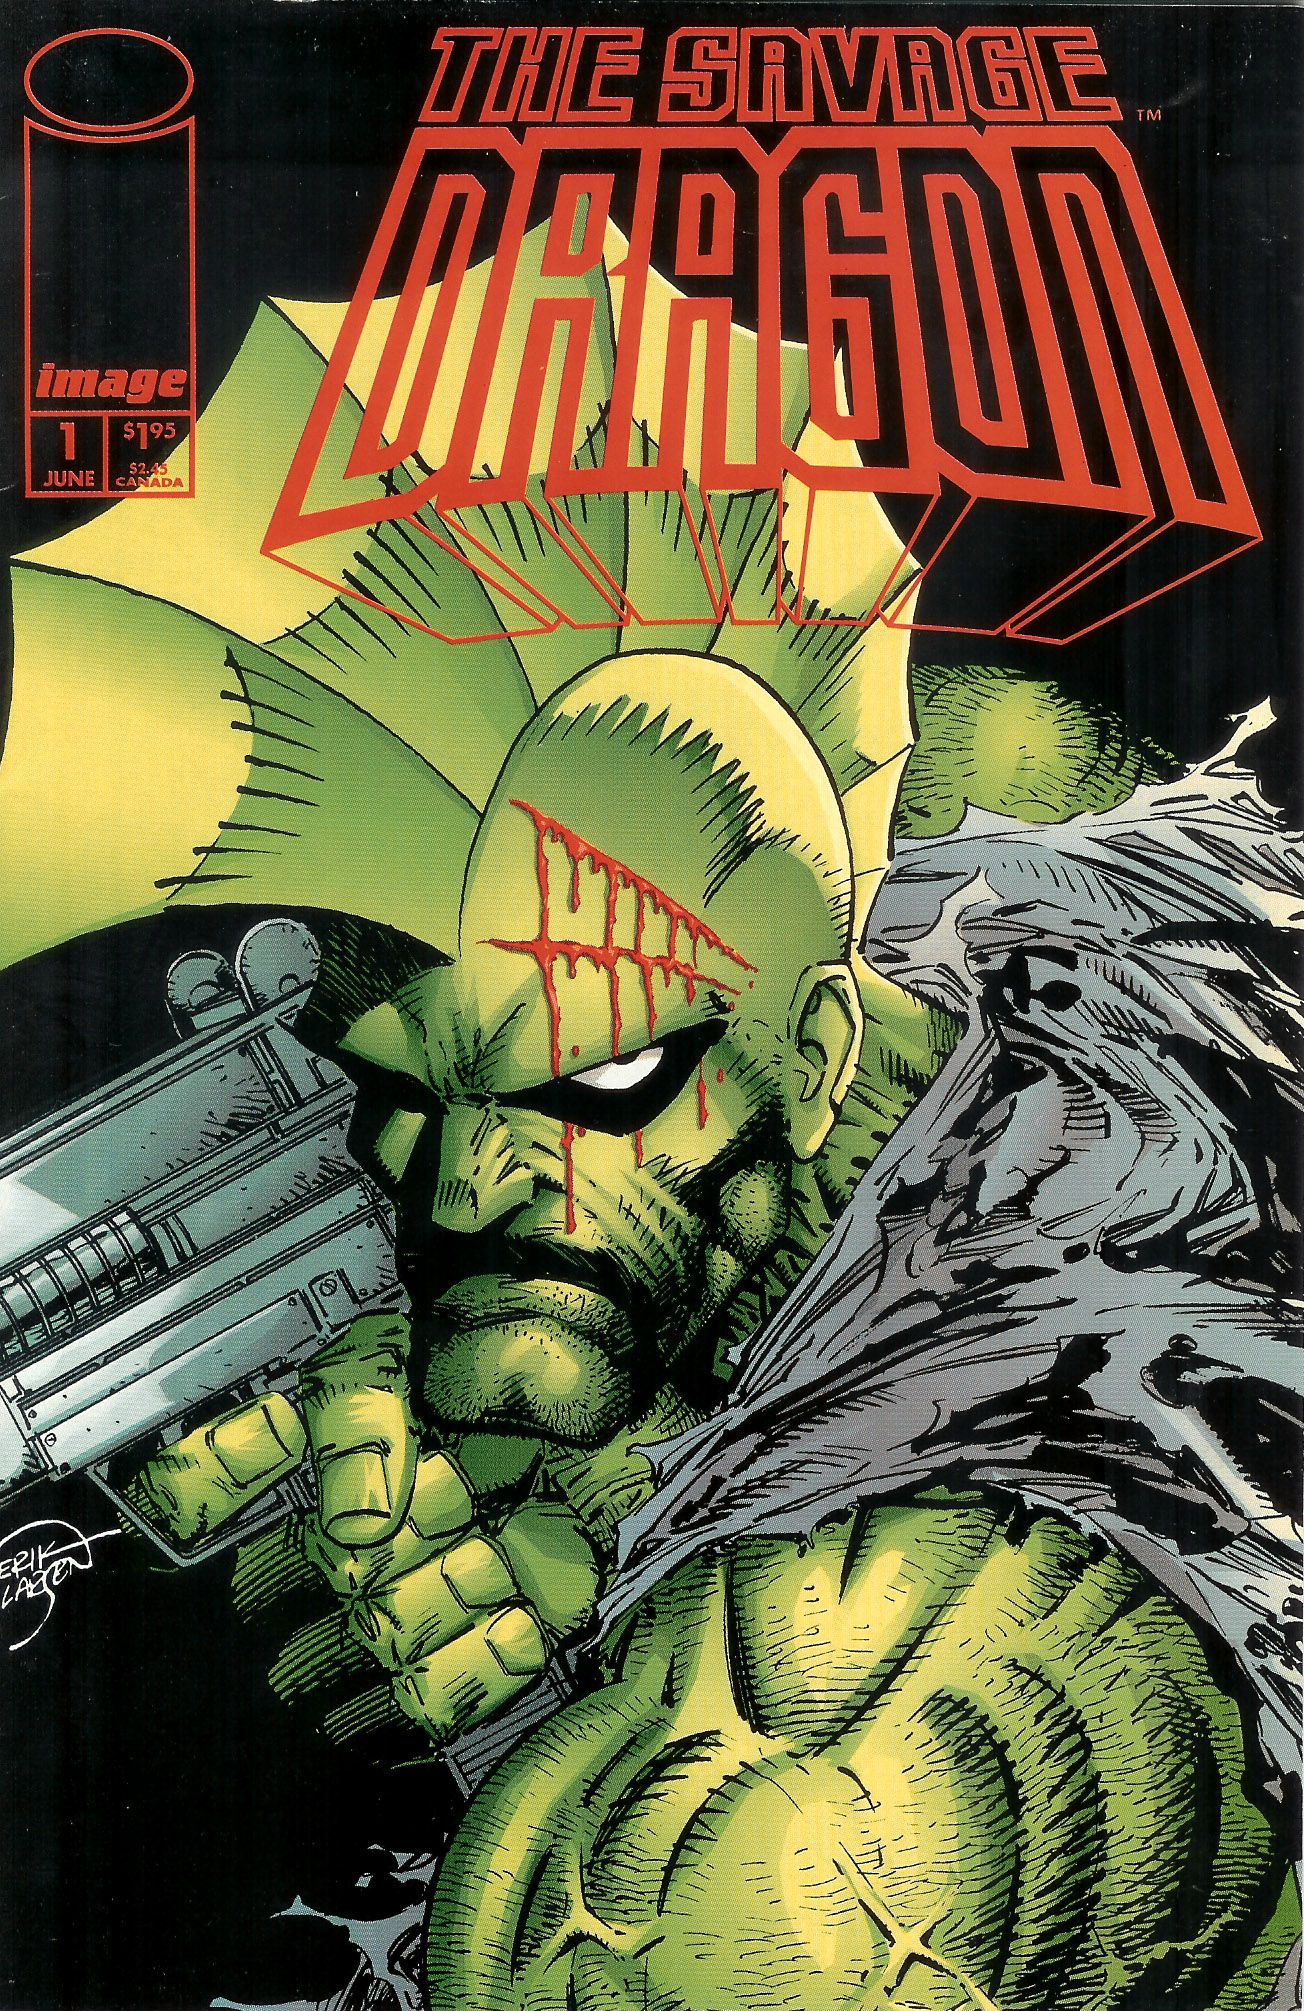 Savage_Dragon_Vol_1_1